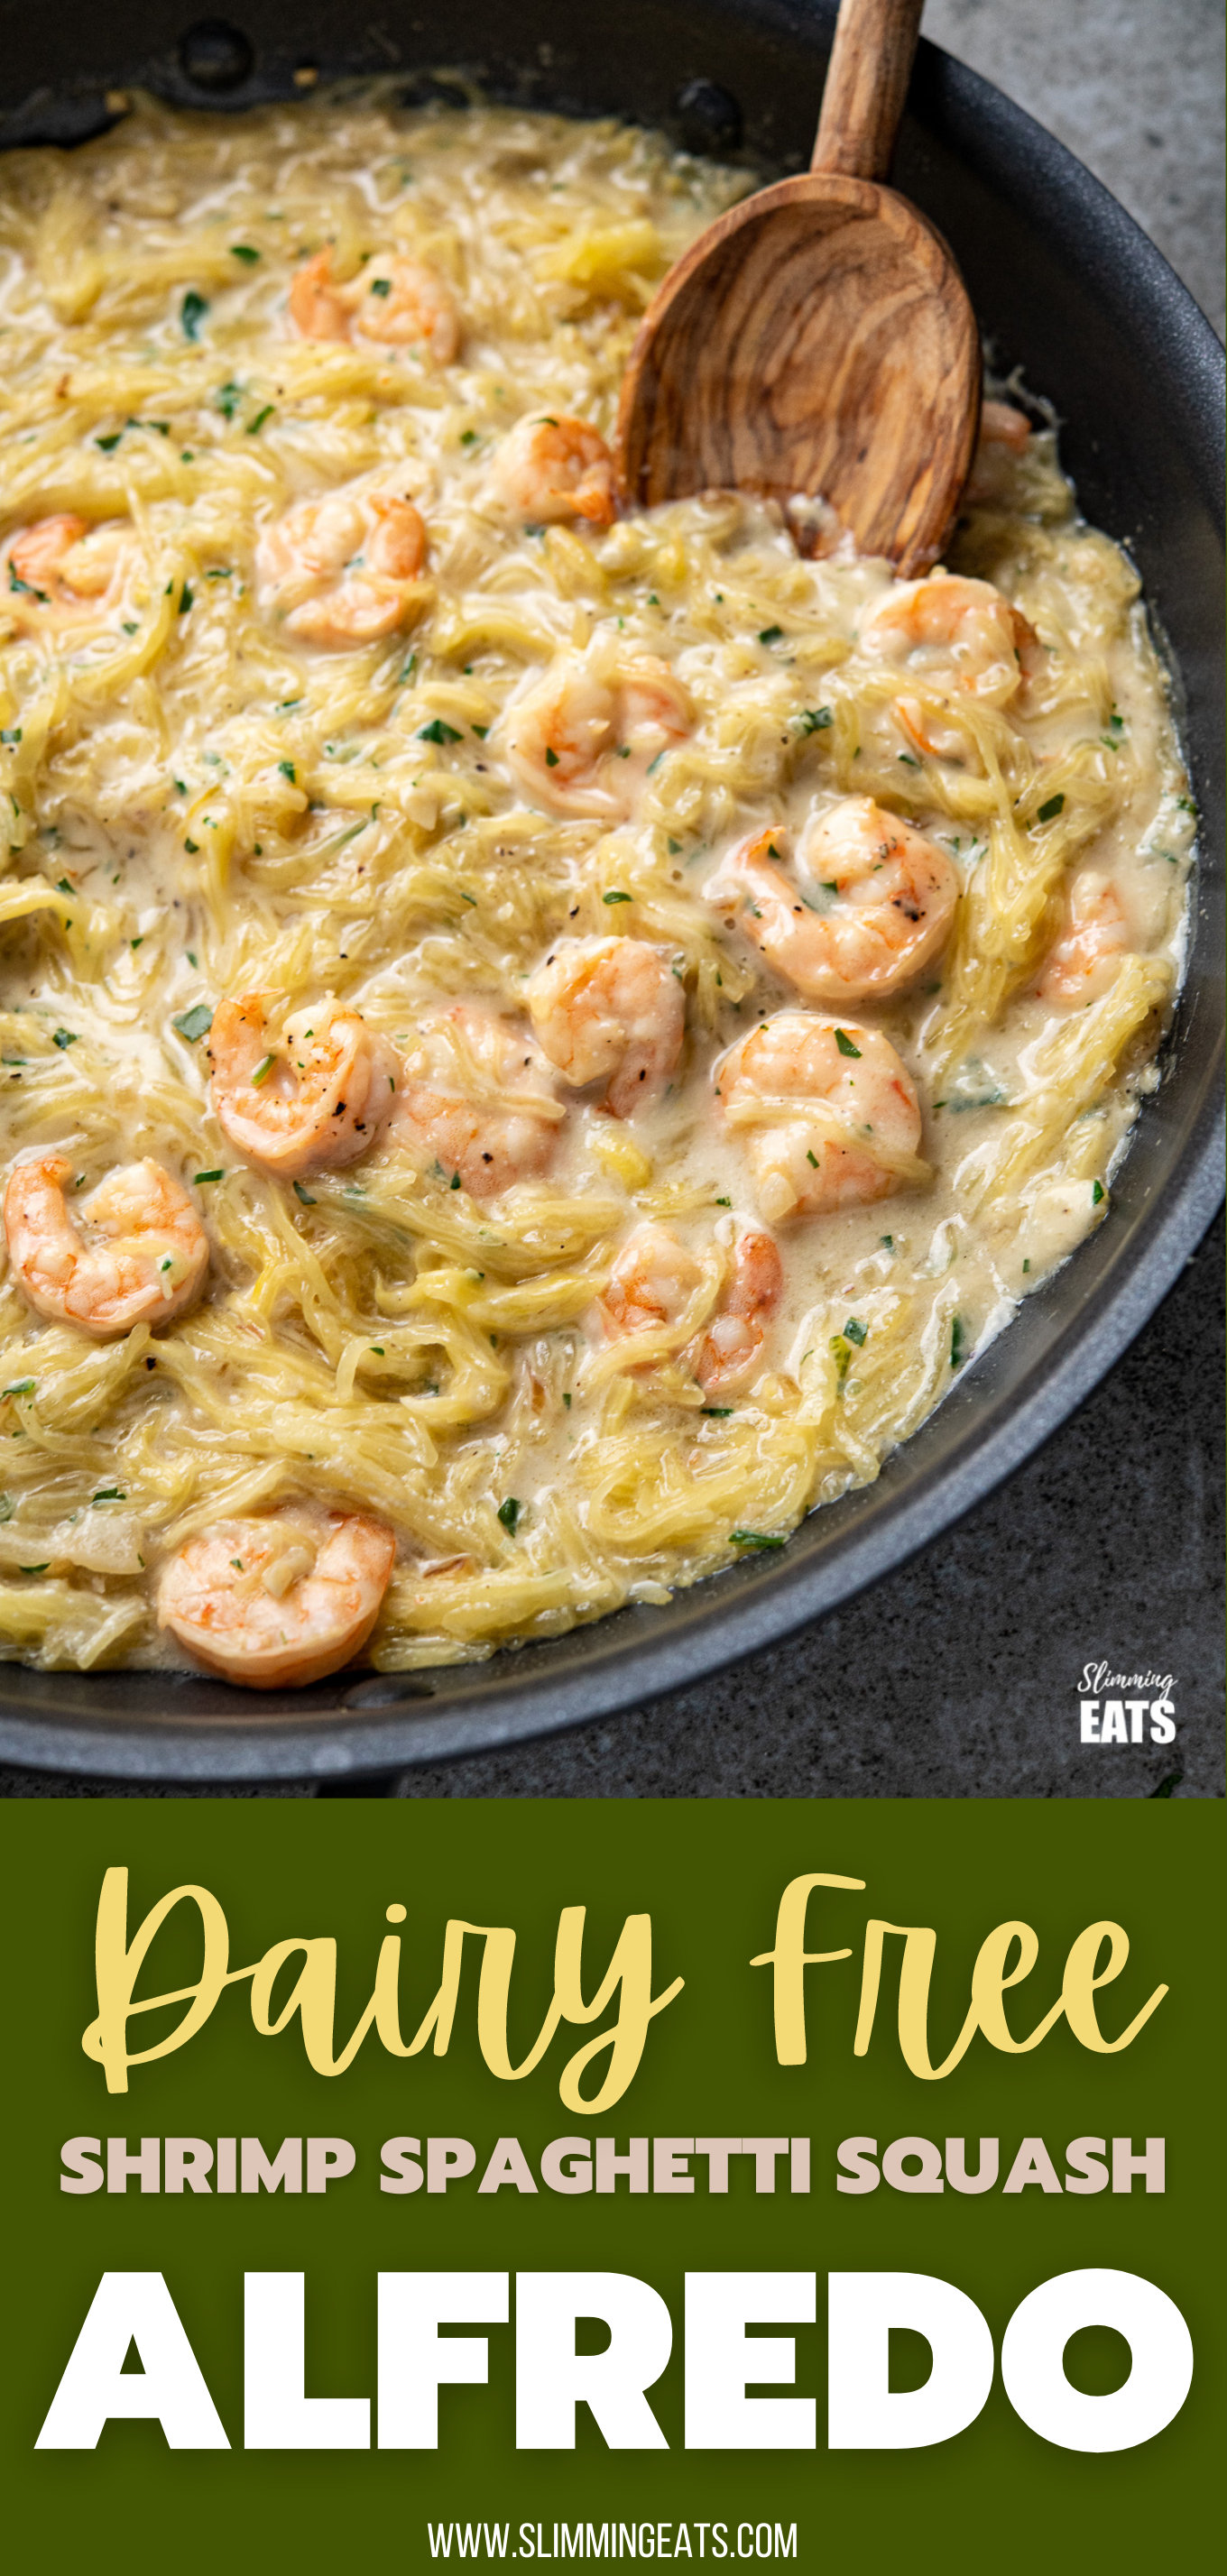 close up of Shrimp Spaghetti Squash Alfredo in a black frying pan with olive wood spoon